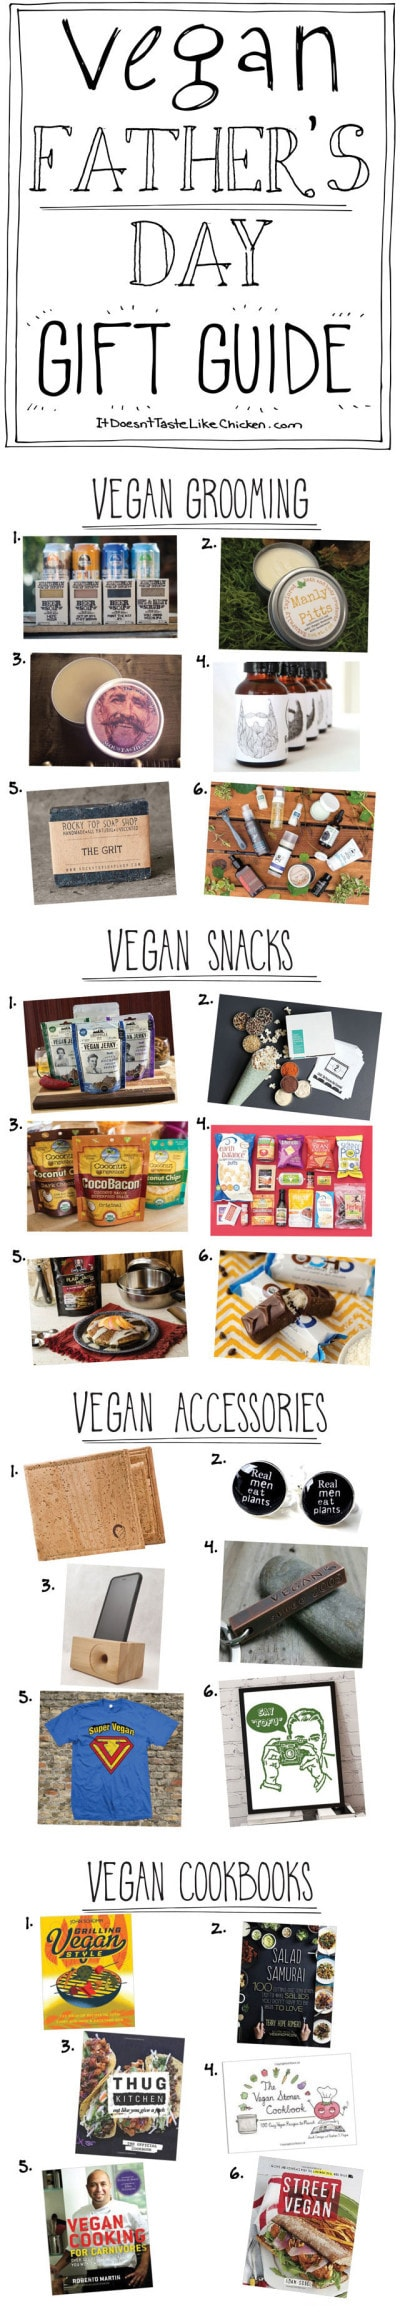 vegan-father's-day-gift-guide-2